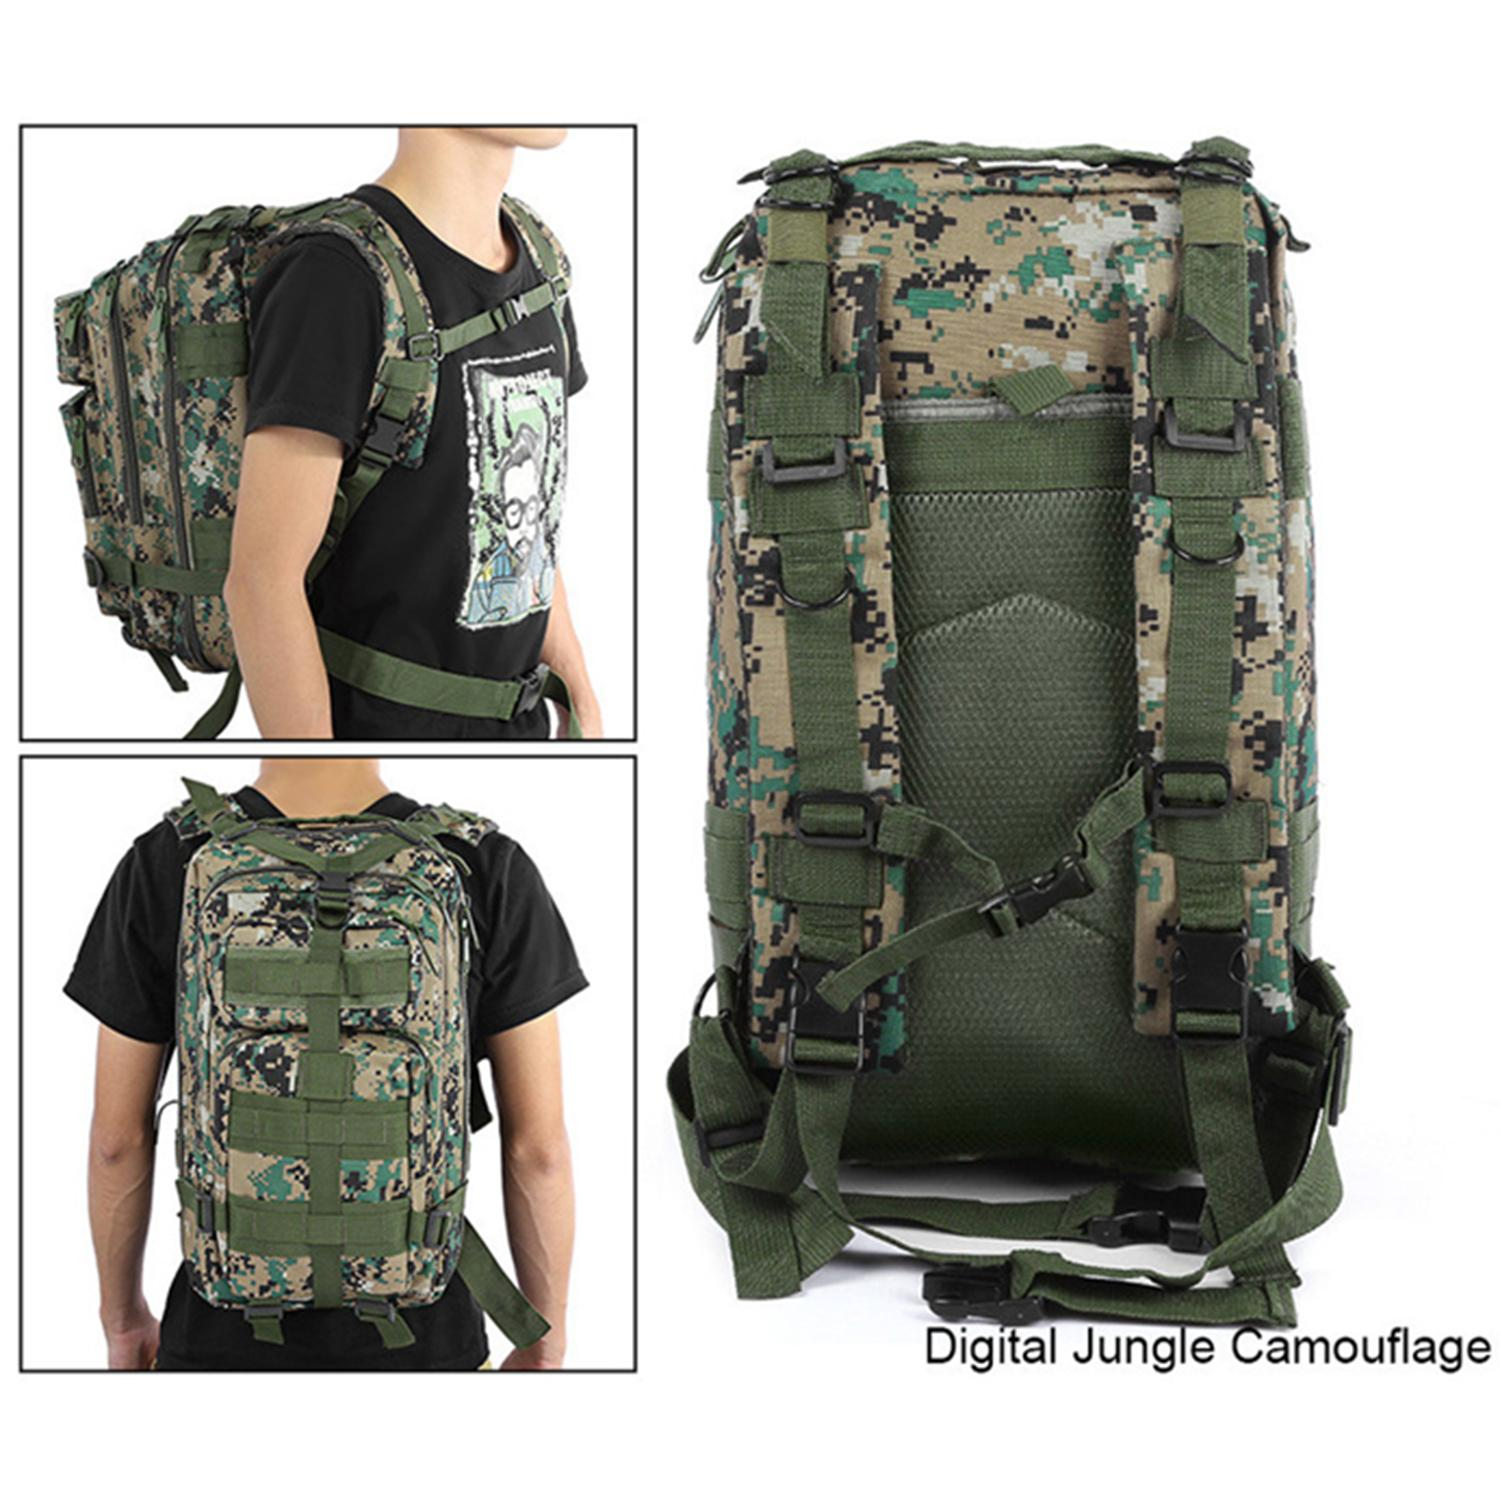 25L Military Bag Army Tactical Outdoor Camping Backpack Oxford for Cycling  Hiking Sports Climbing Bag 2c5c1ba8a5a2f